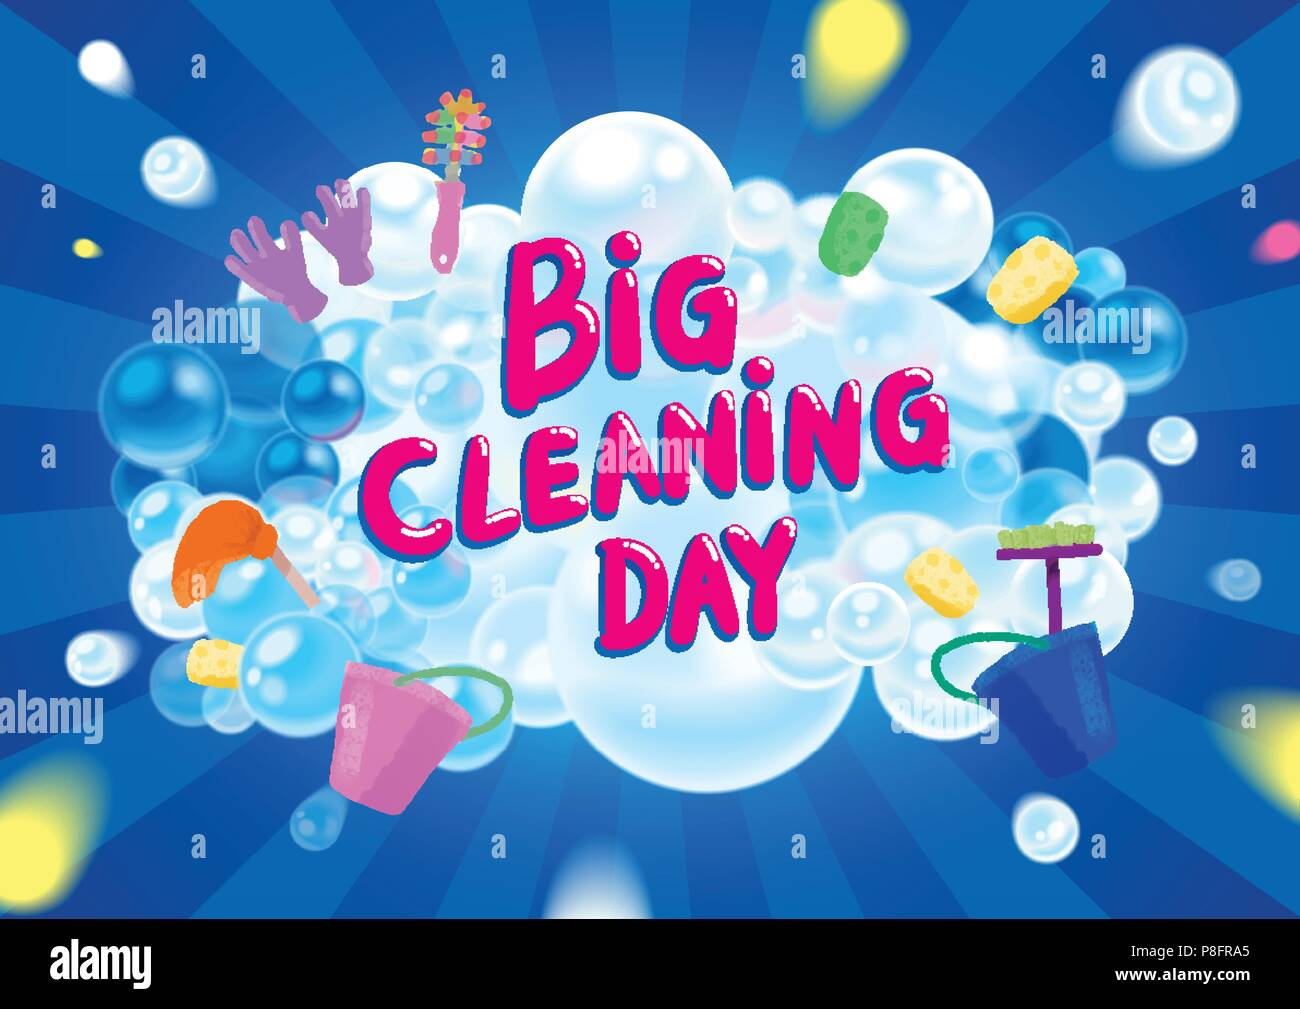 This Day was cleaning day